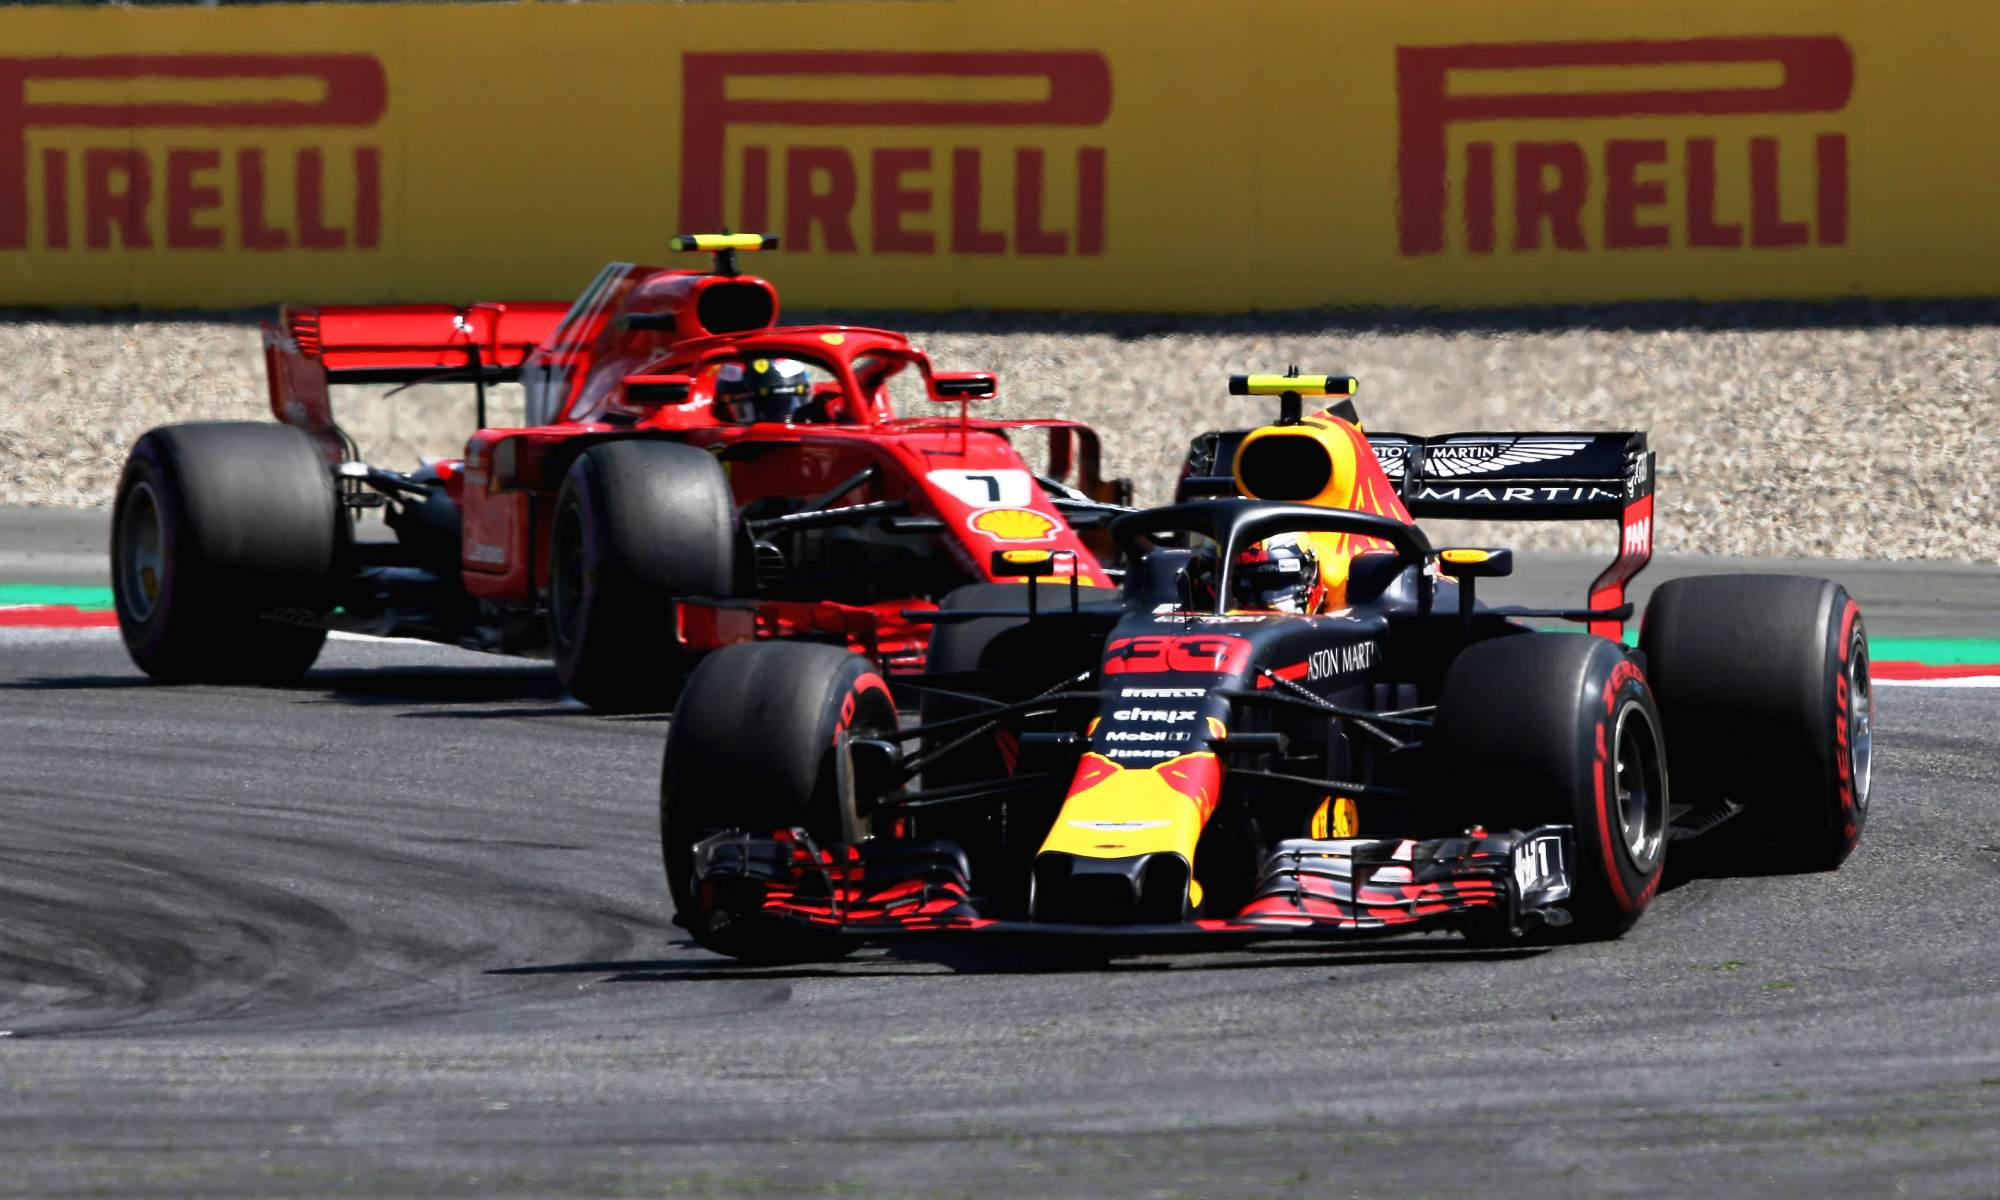 Verstappen and Raikkonen